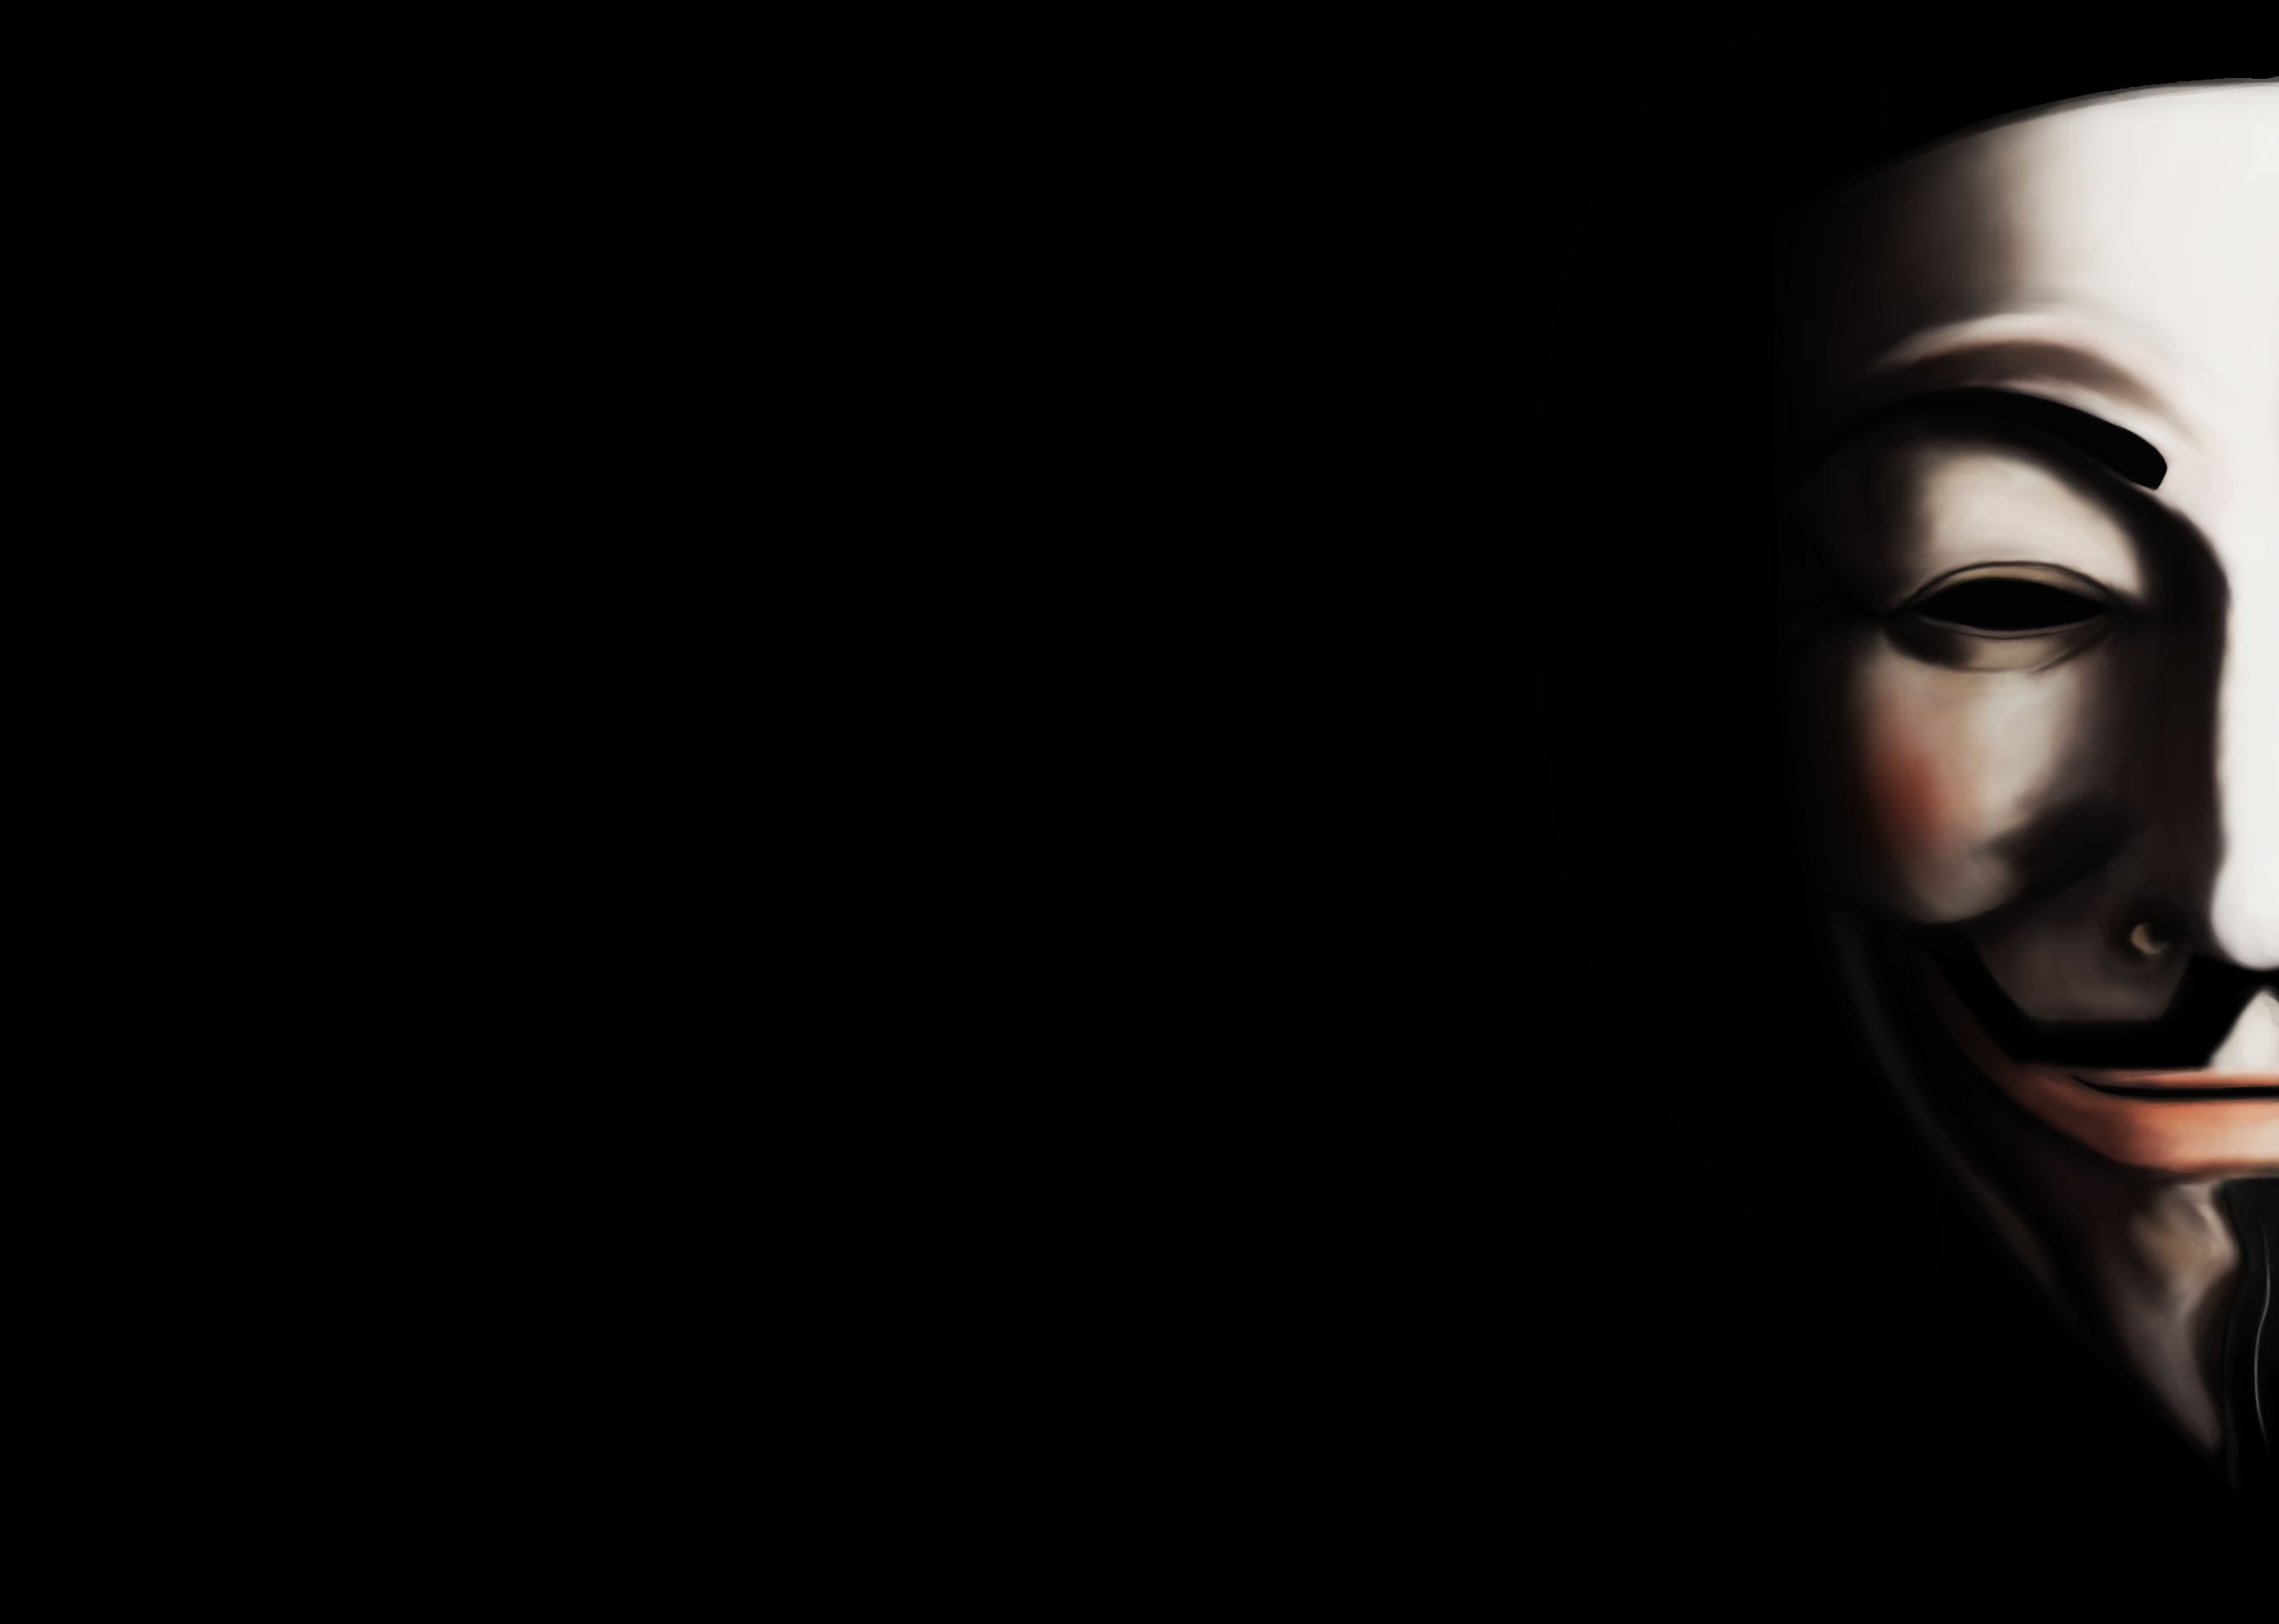 V For Vendetta Wallpapers Images Photos Pictures Backgrounds